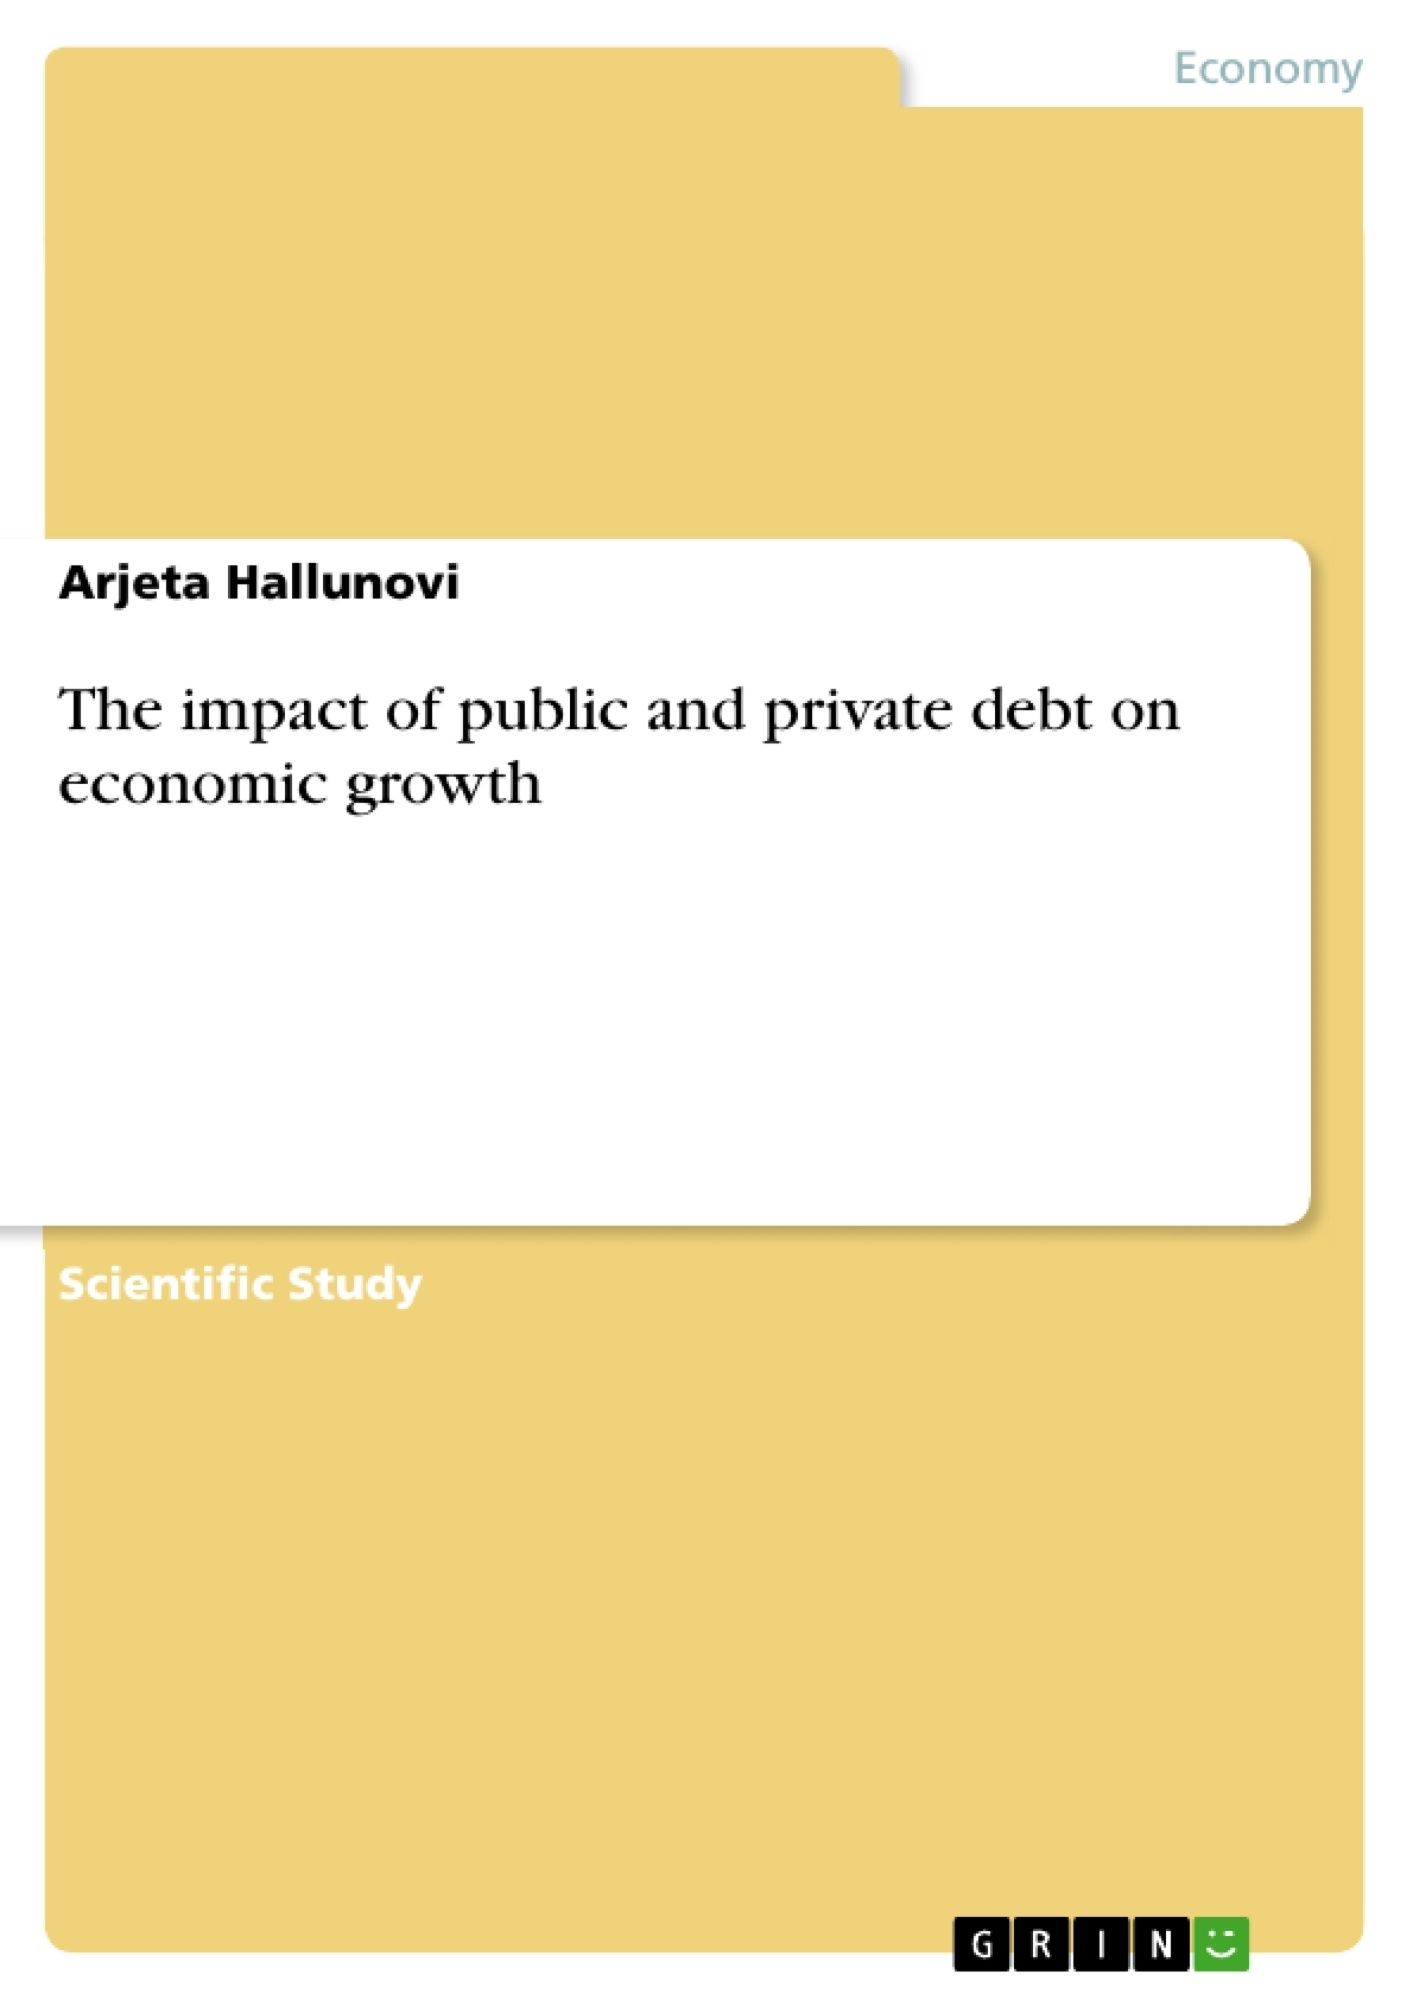 Title: The impact of public and private debt on economic growth